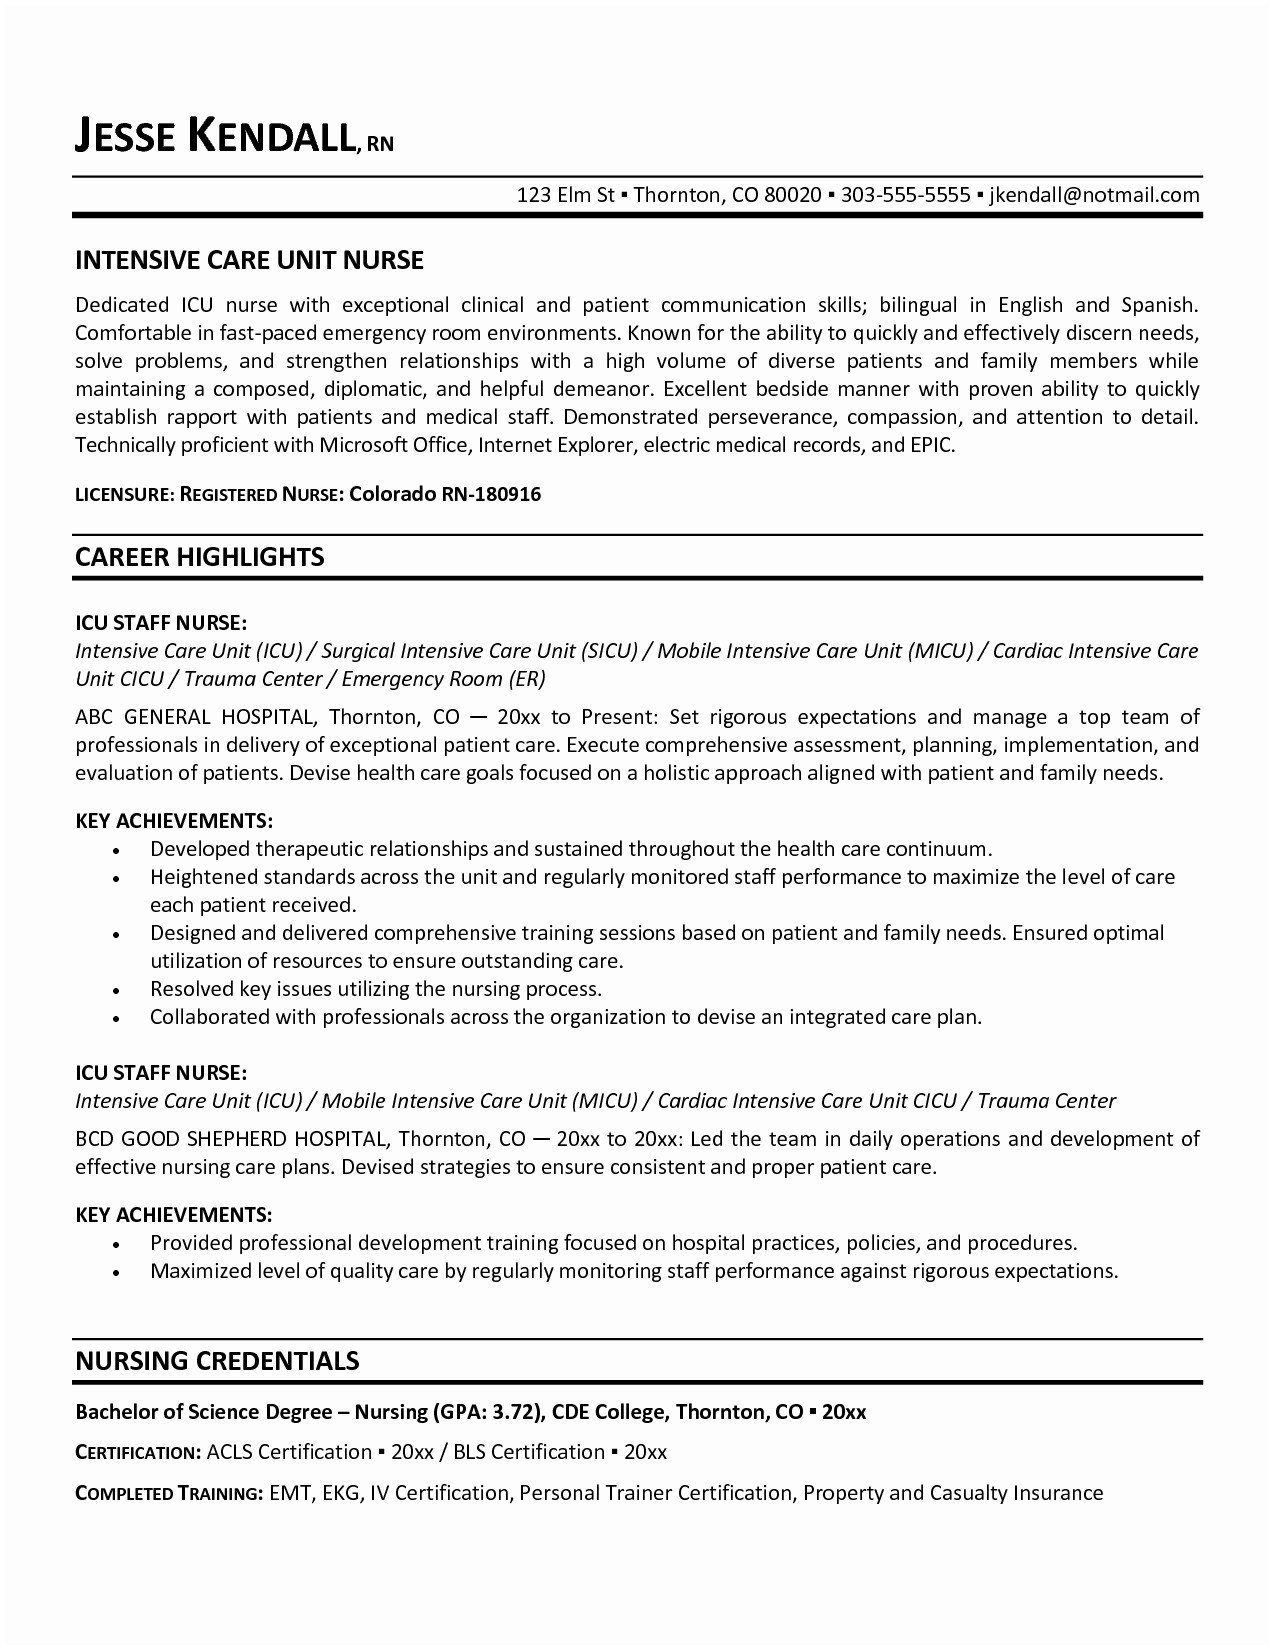 Rn Resume Examples - Good Nursing Resume Examples